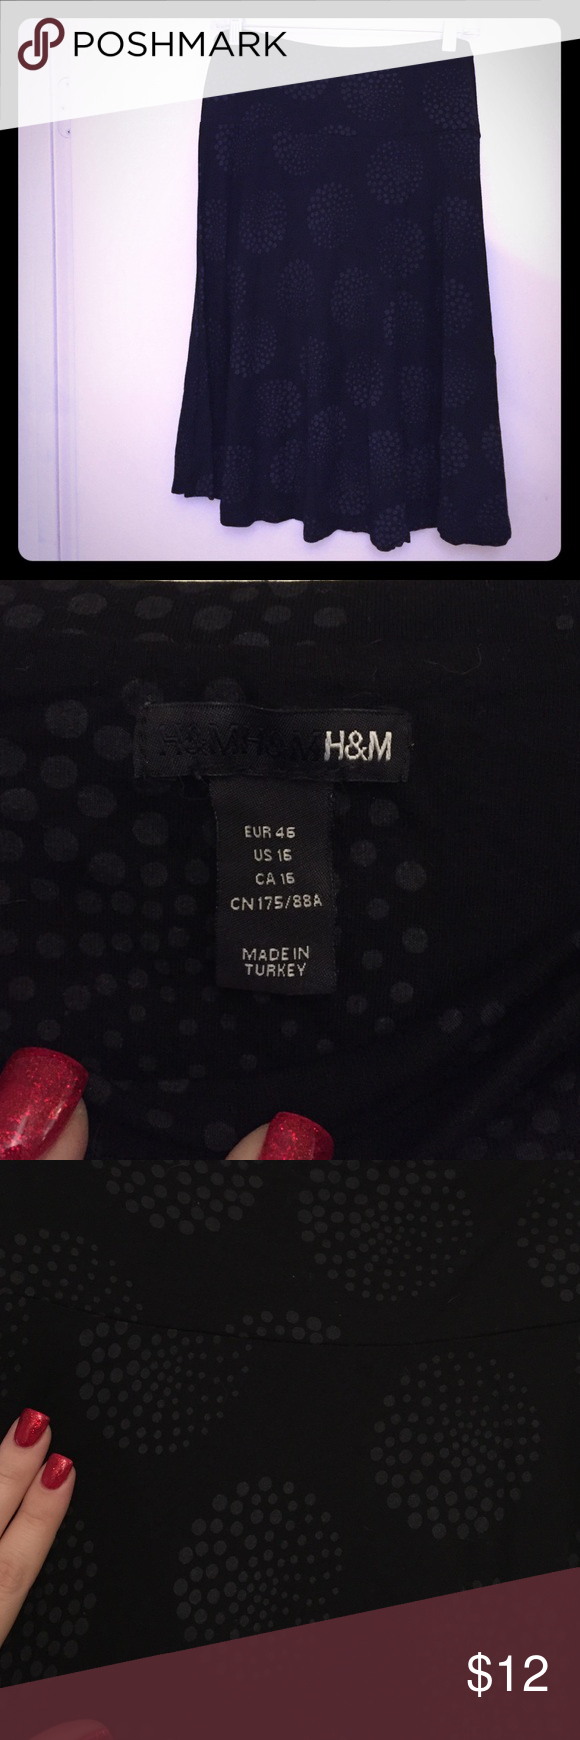 H&M Black Skirt, size 16 Black skirt printed with a dark gray circle pattern. Soft, stretchy, flowy material. 26 inches long. EUC H&M Skirts